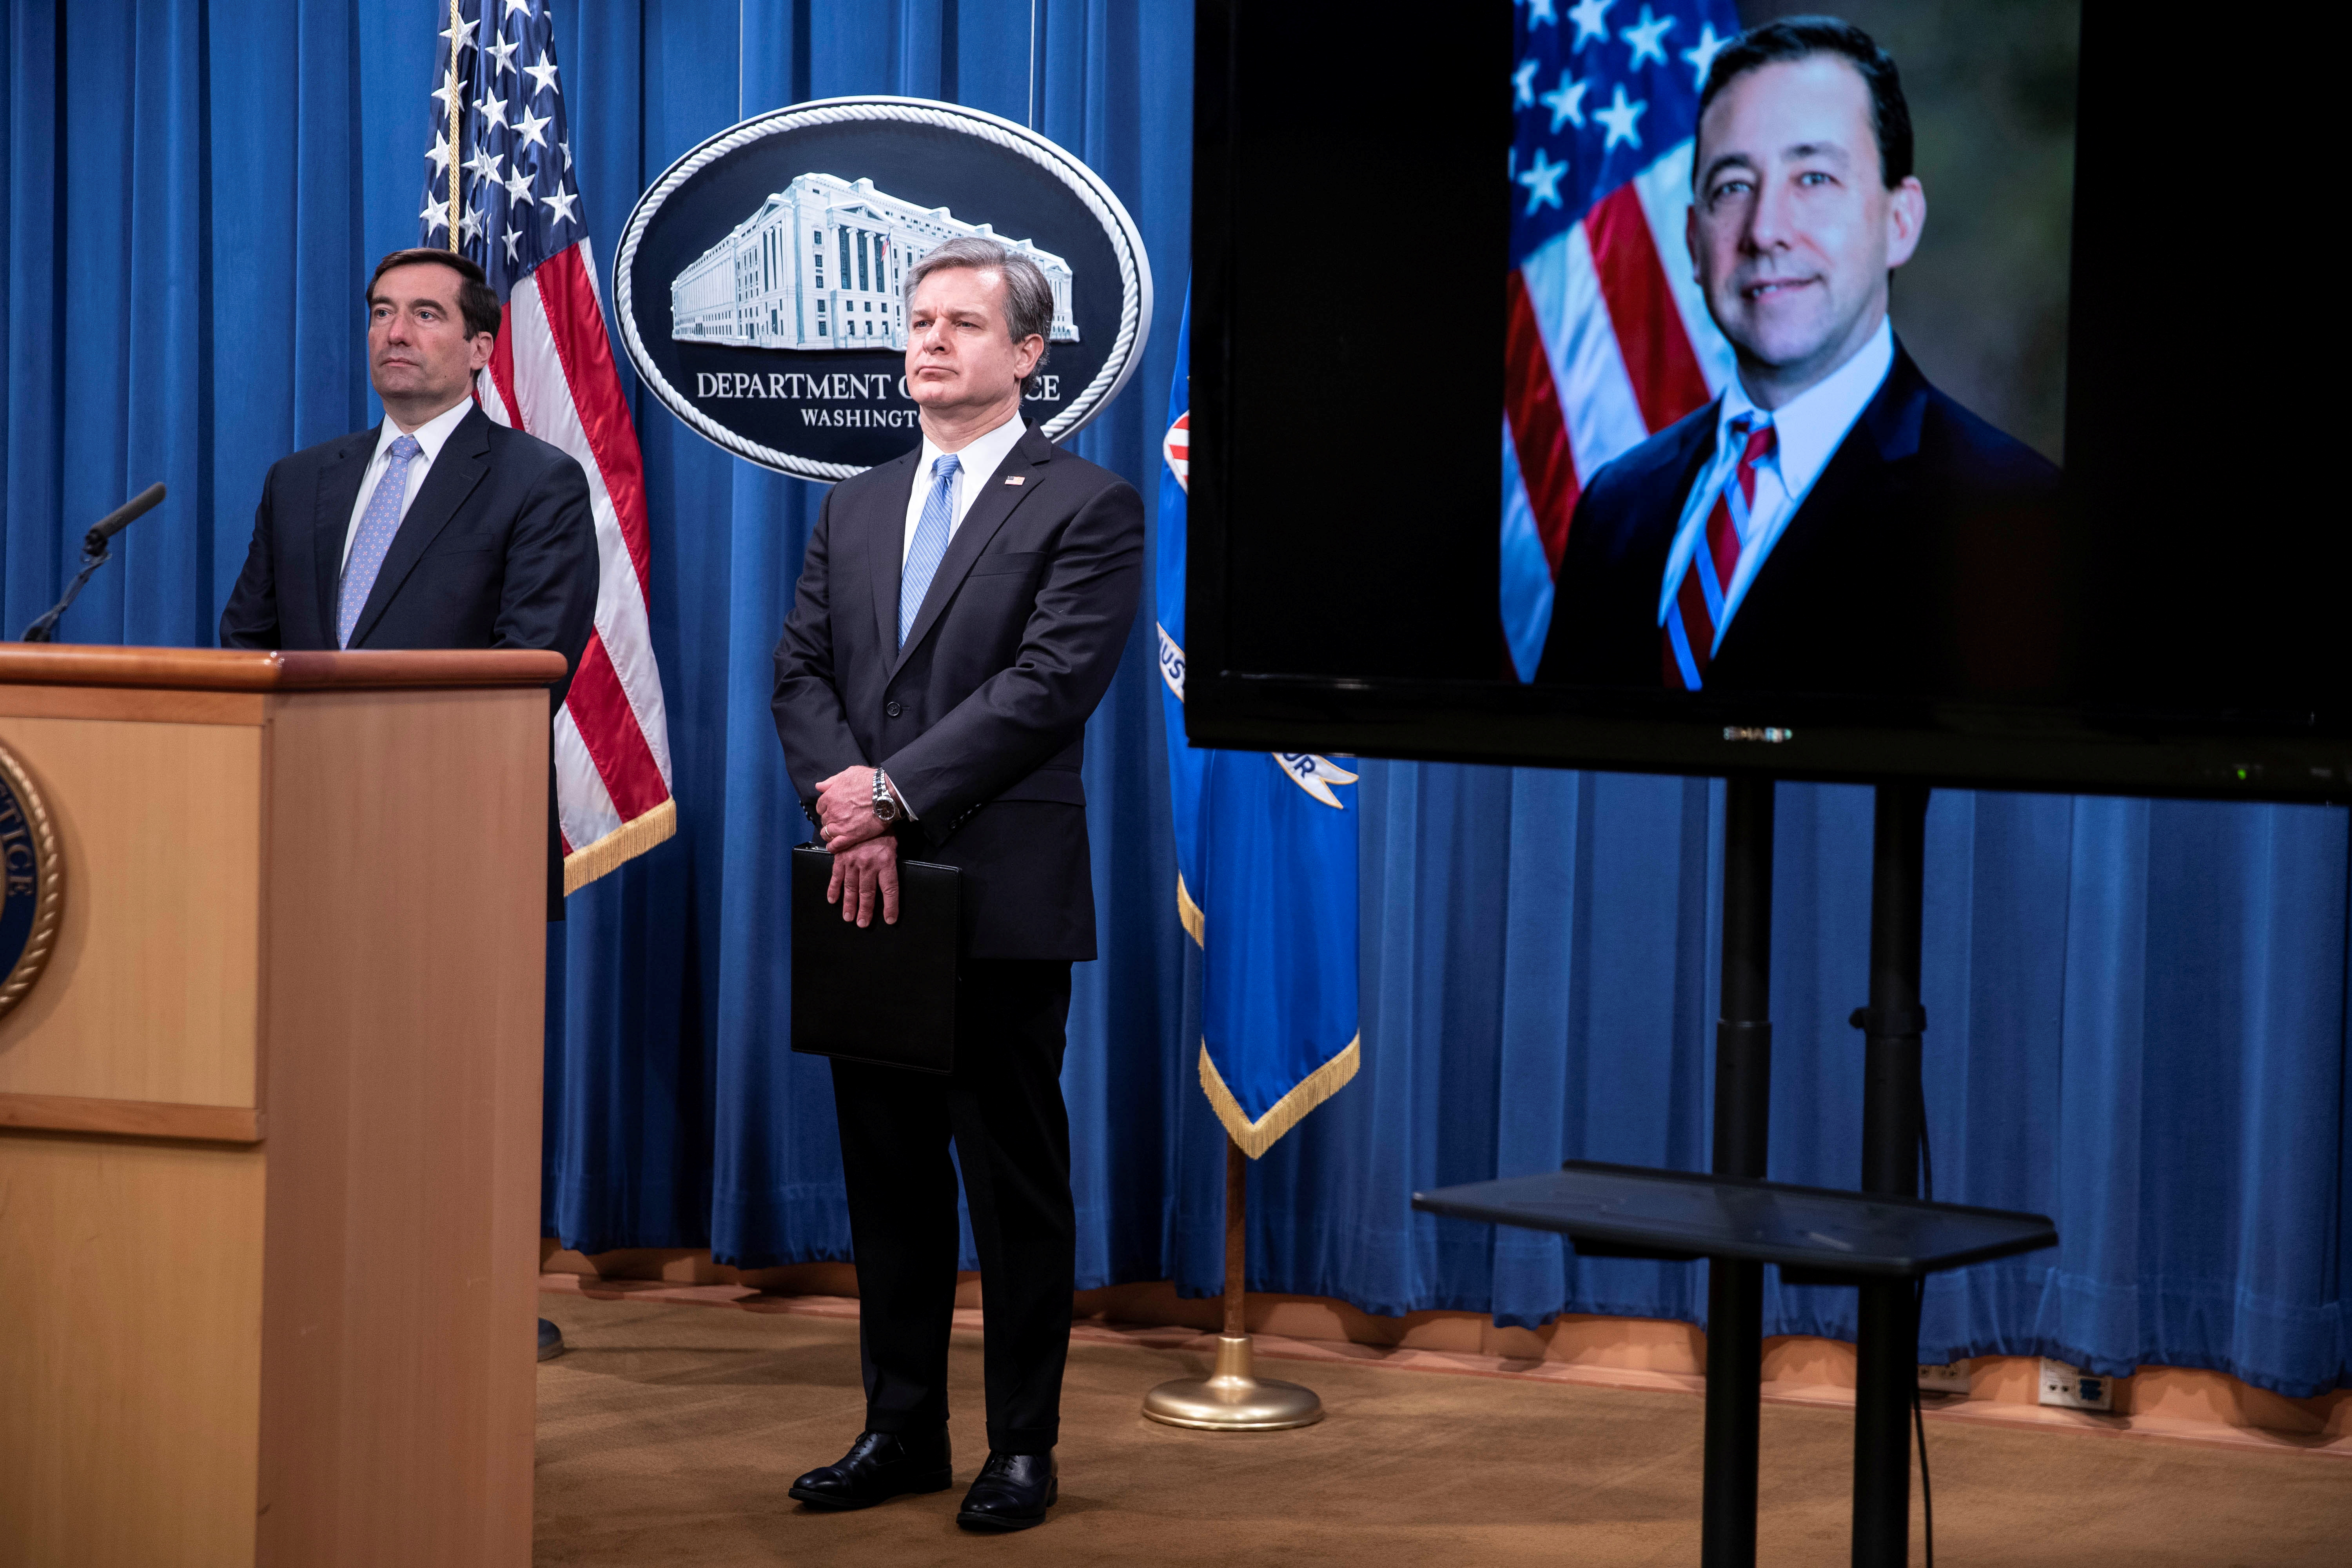 US Charges 8 Chinese Operatives in Intimidation Plot